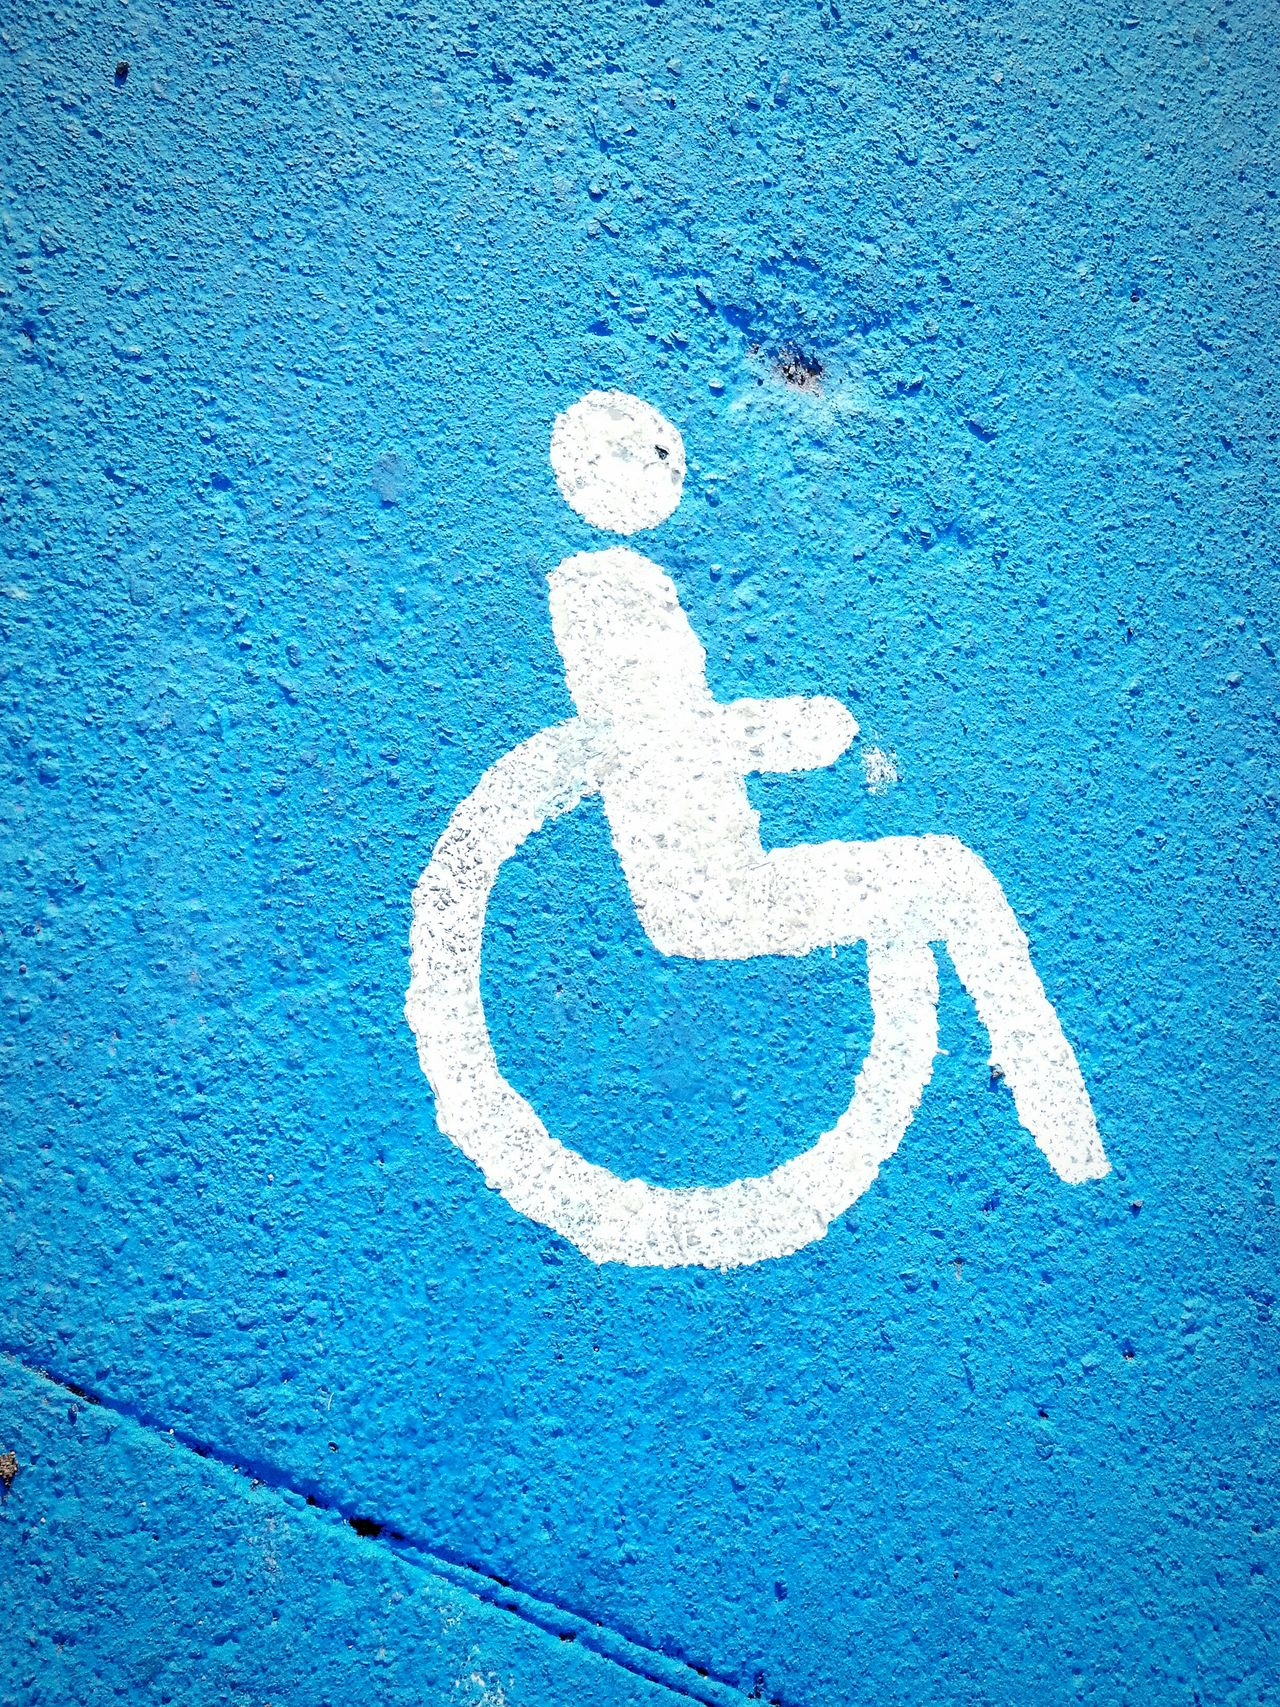 Disabled Symbol Disabled Informatin Sign Disabled Icon Disabled Parking Disabled Sign Blue White Blue Paint On The Sidewalk Symbol Icon Sign